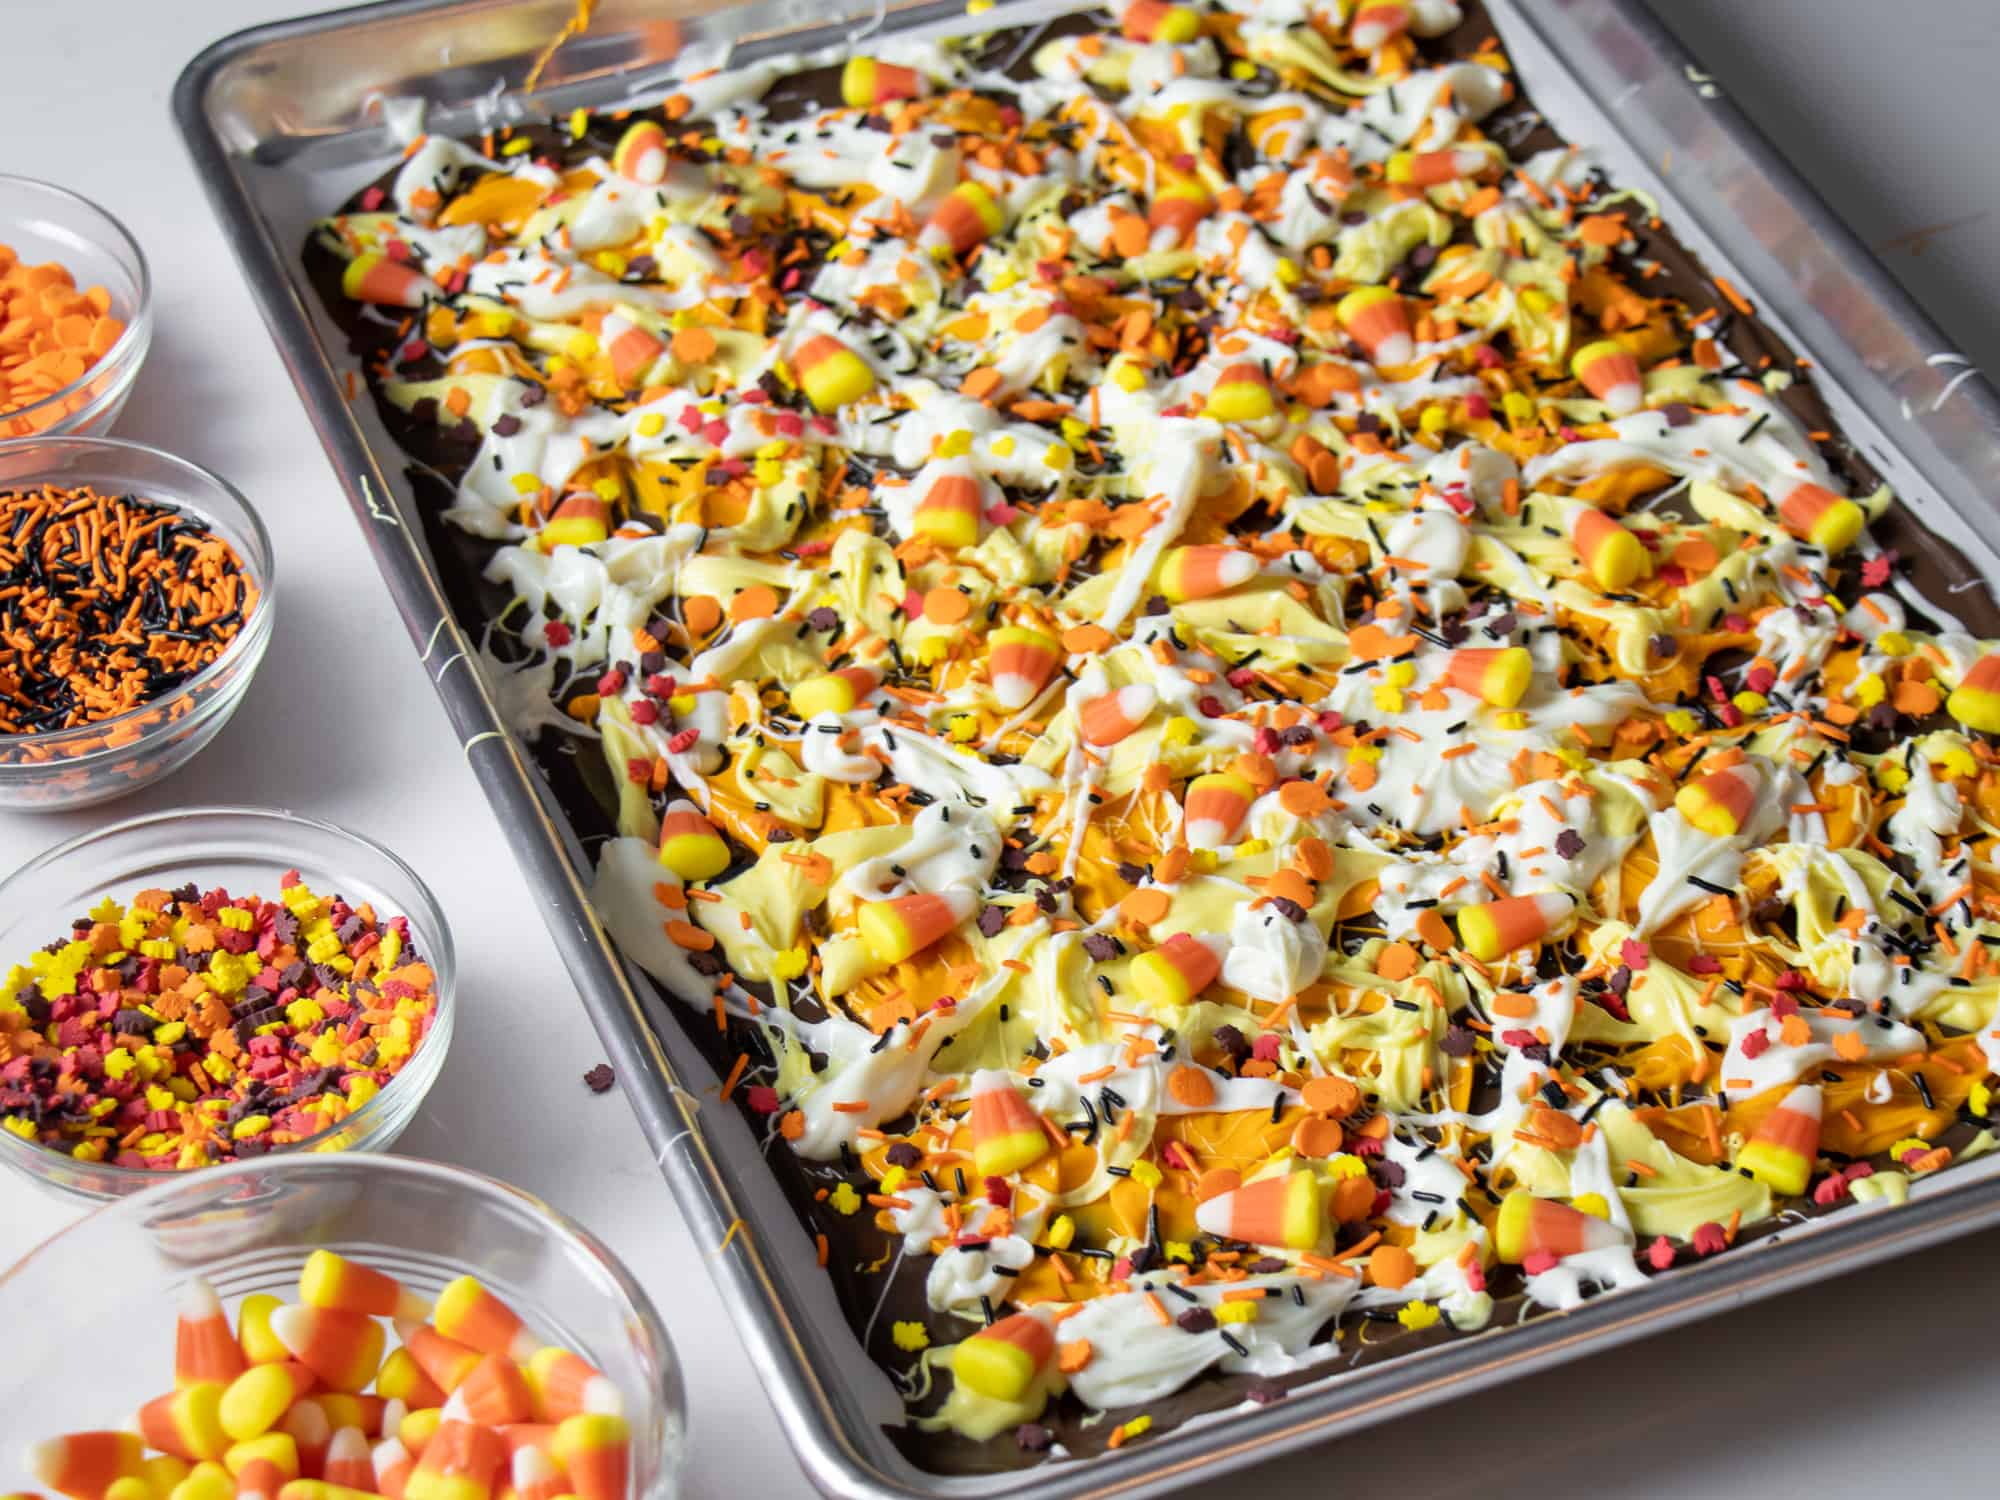 Top with candy corn and sprinkles all over the melted chocolate.